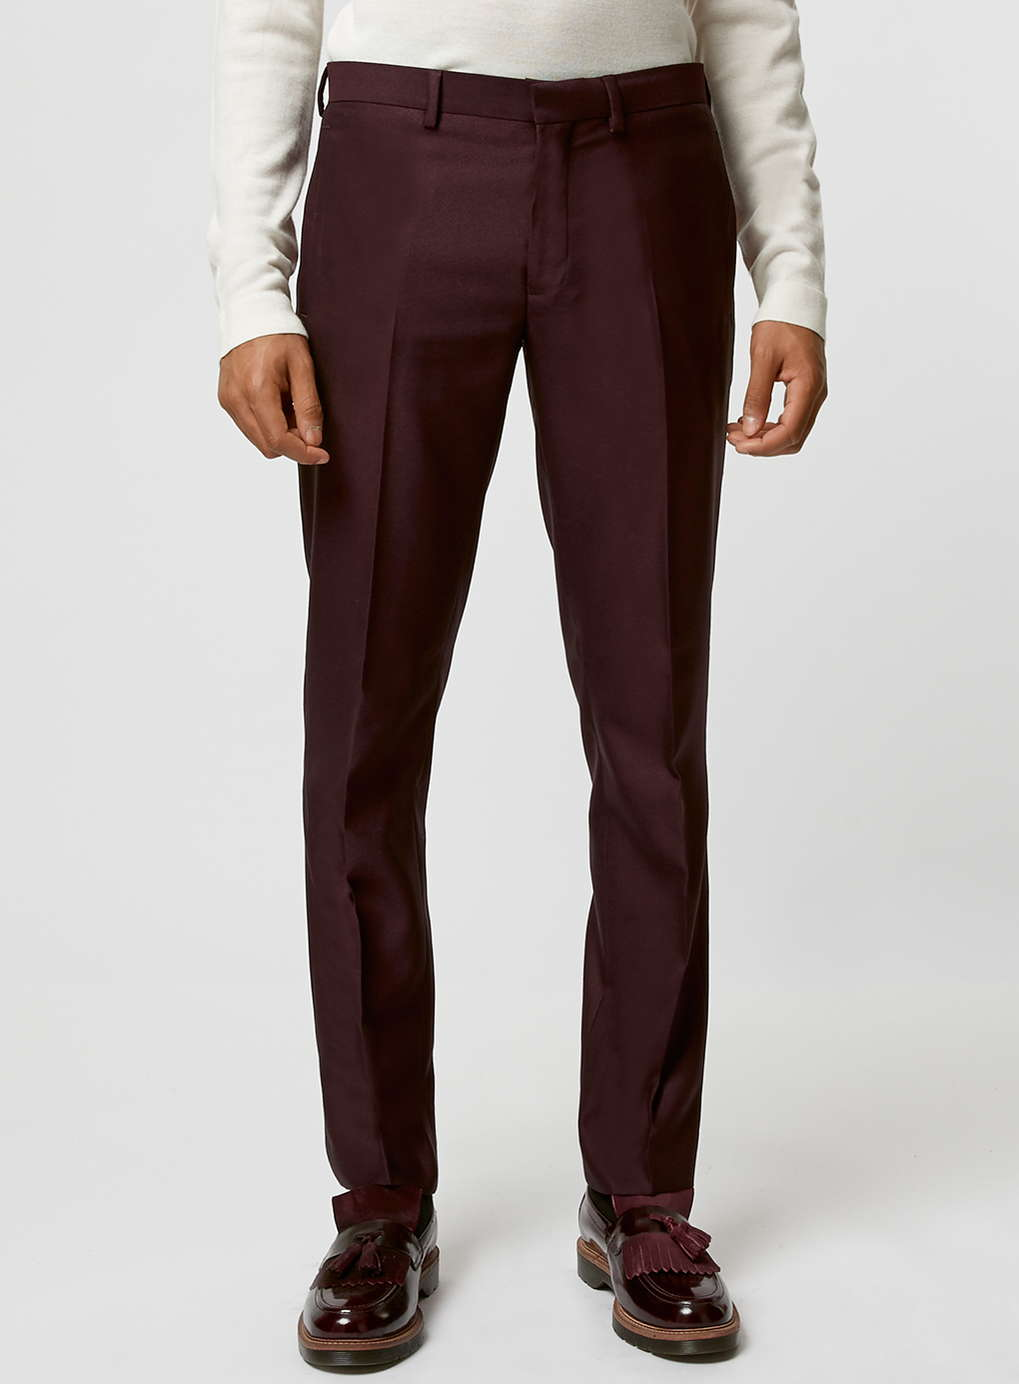 Topman Burgundy Trousers